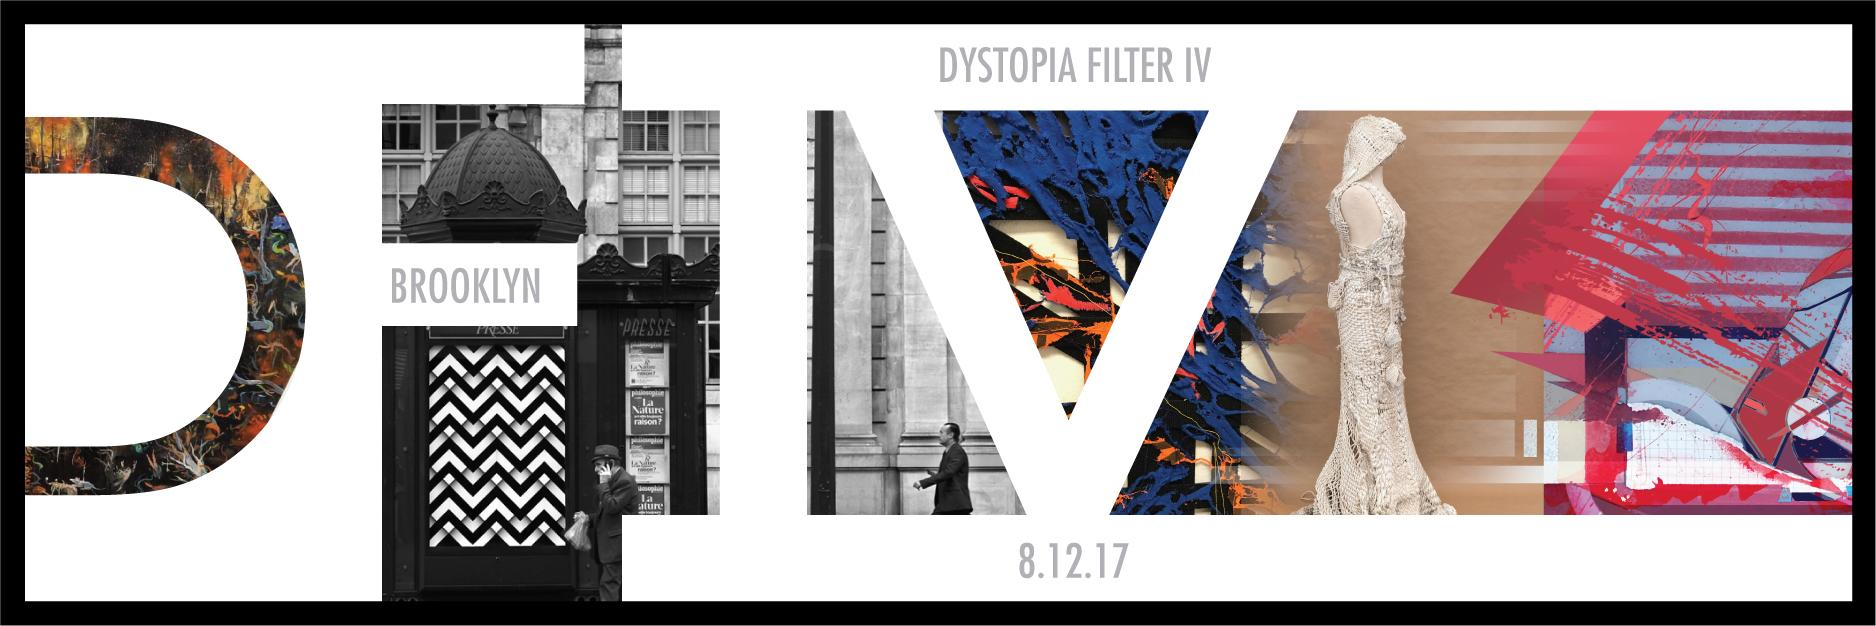 """DYSTOPIA FILTER IV""  